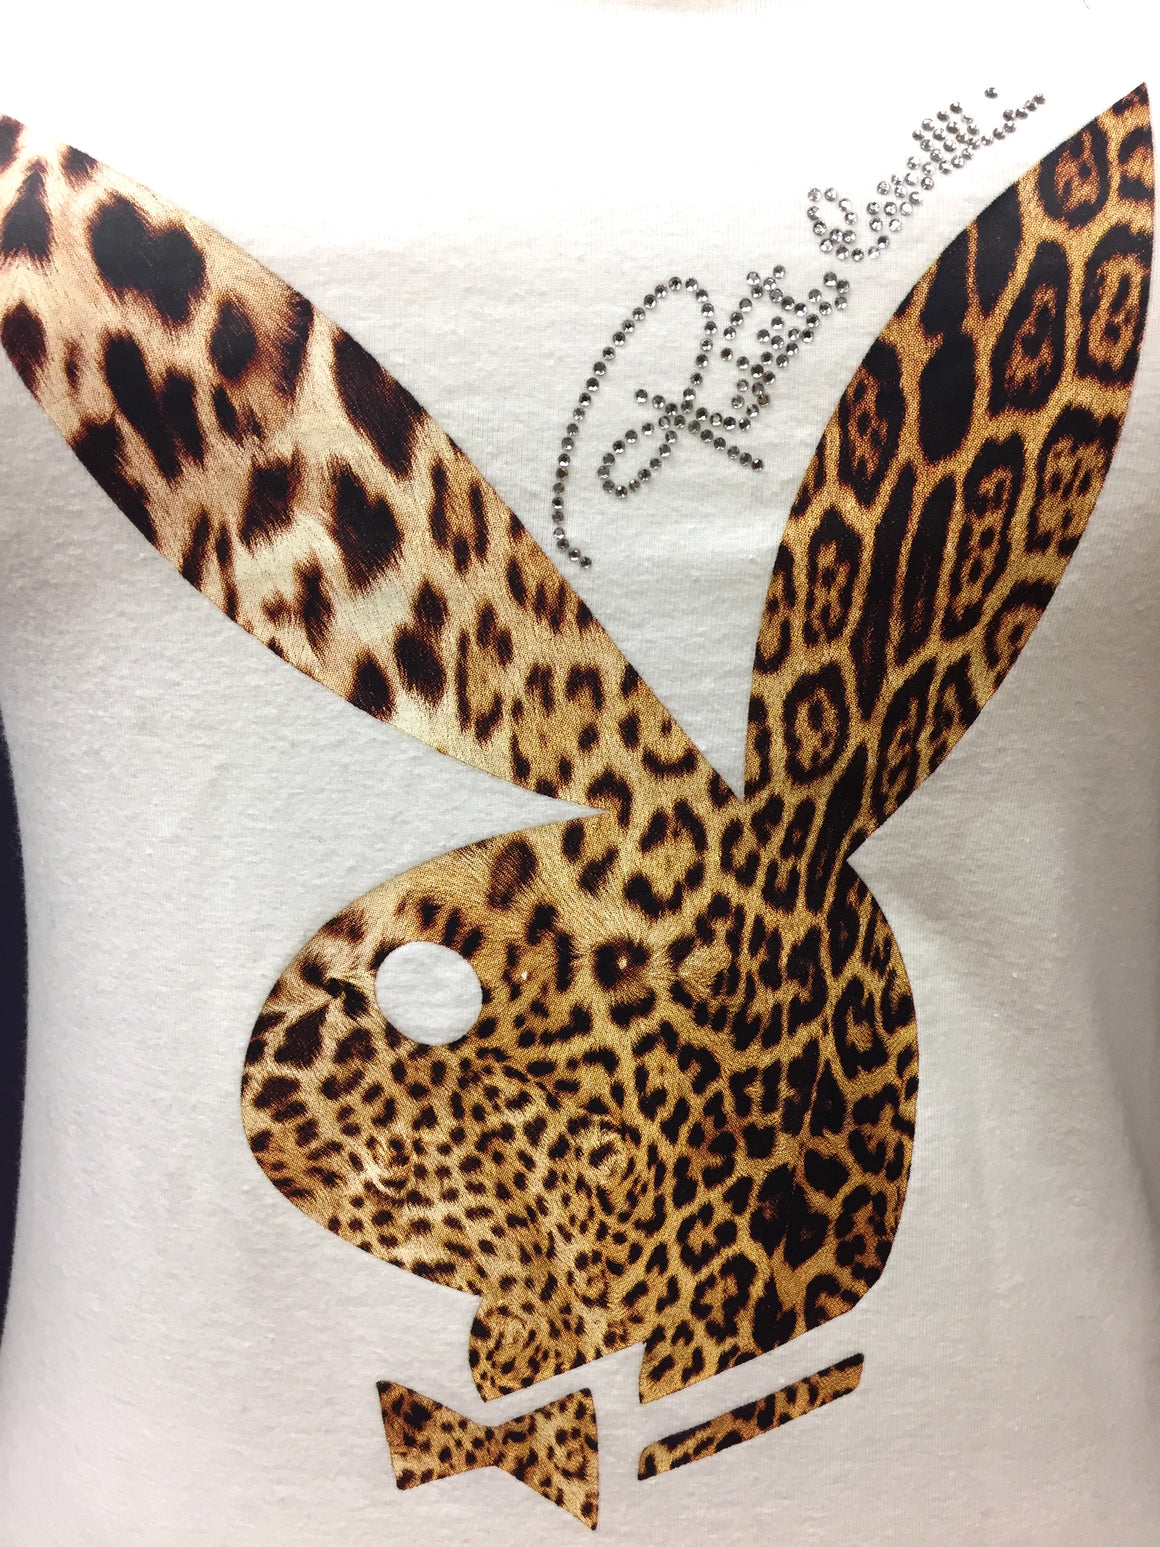 ROBERTO CAVALLI for PLAYBOY Limited Edition White Cotton-Blend BBUNNY Tank Top Sz IT42/US S/M